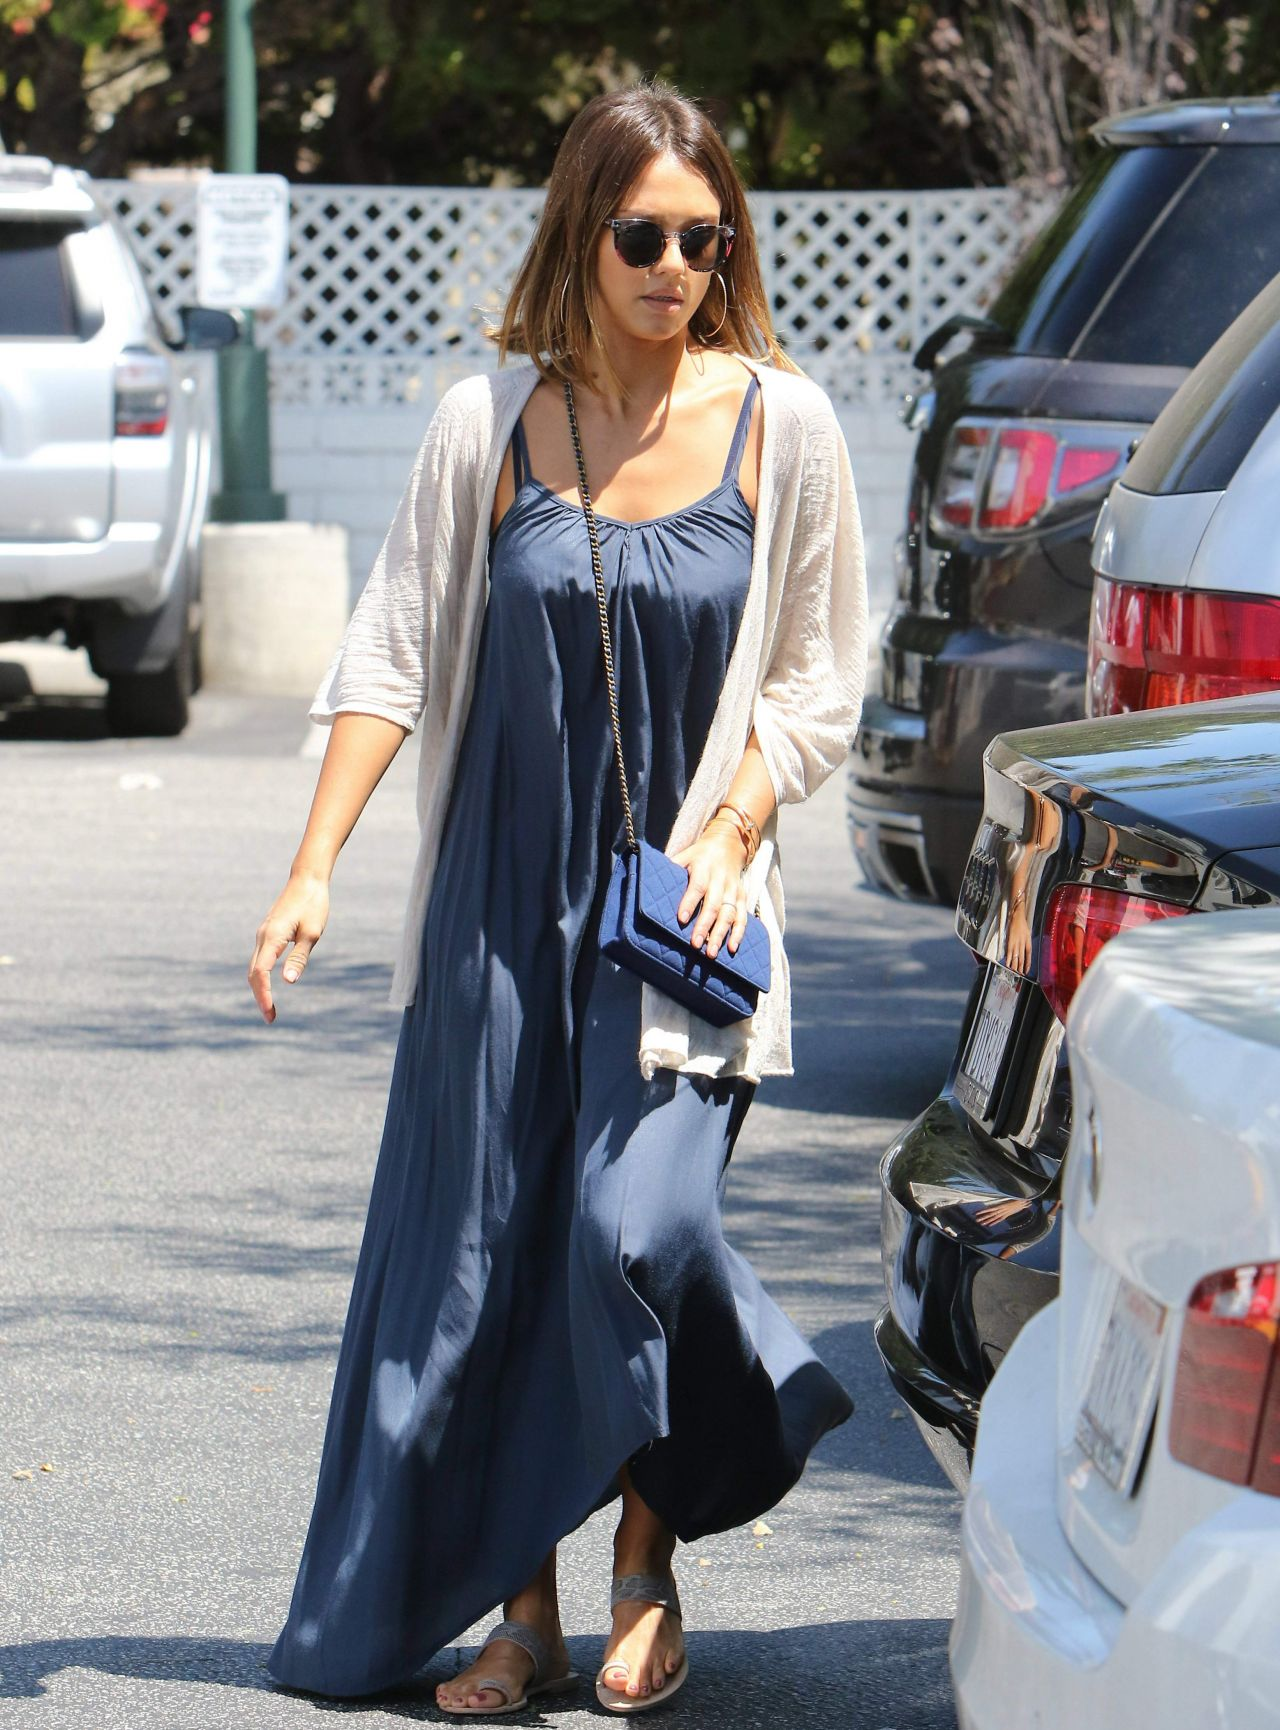 jessica-alba-shopping-at-bristol-farms-in-west-hollywood-july-2015_1